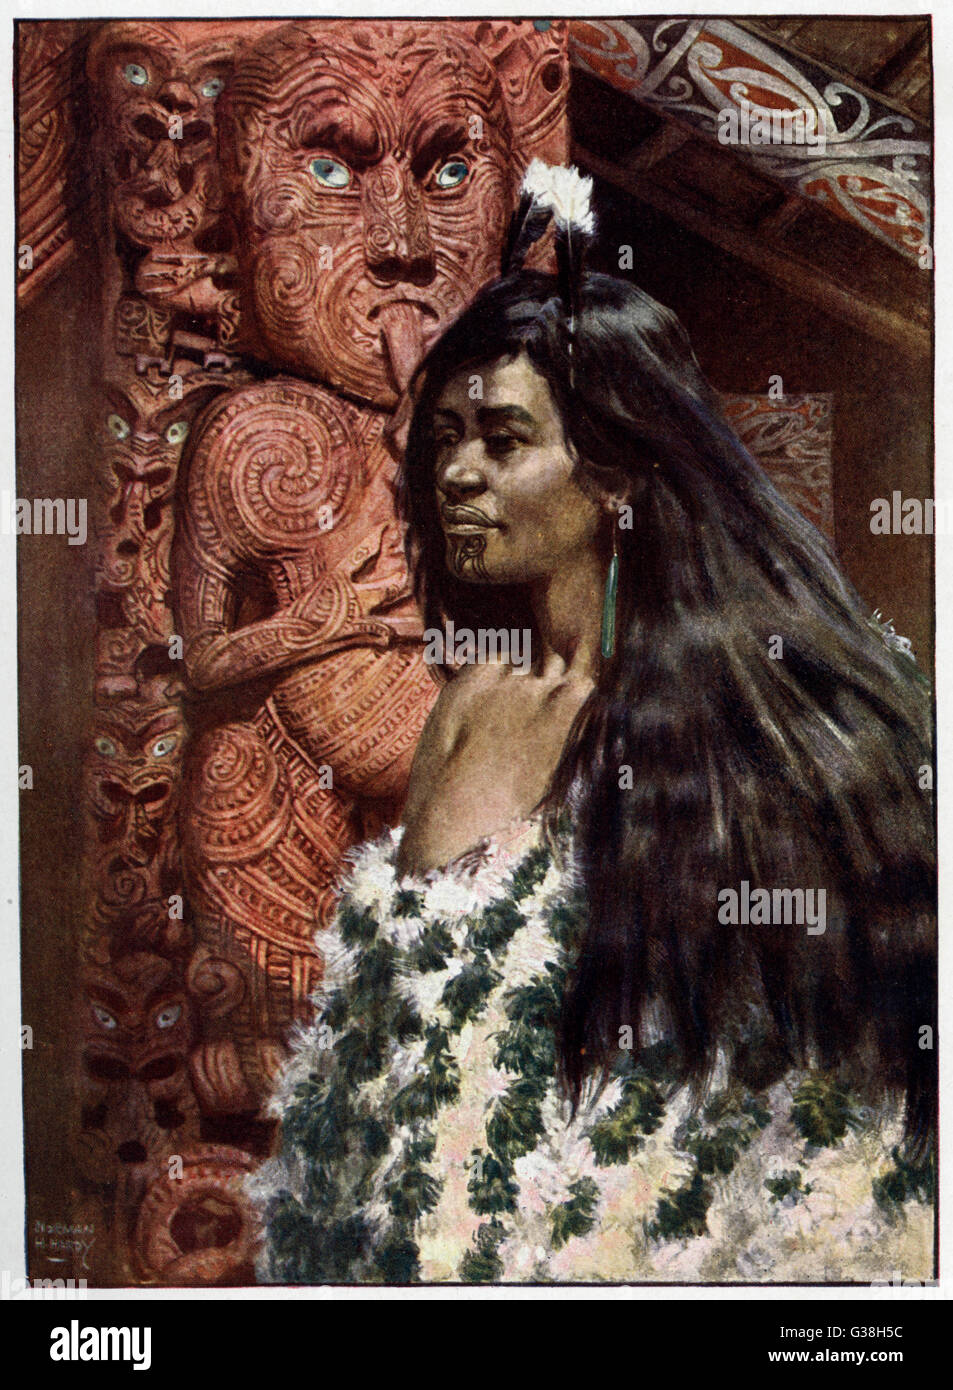 Maori girl with tattooed chin, hair ornaments and ear-rings         Date: 1908 - Stock Image